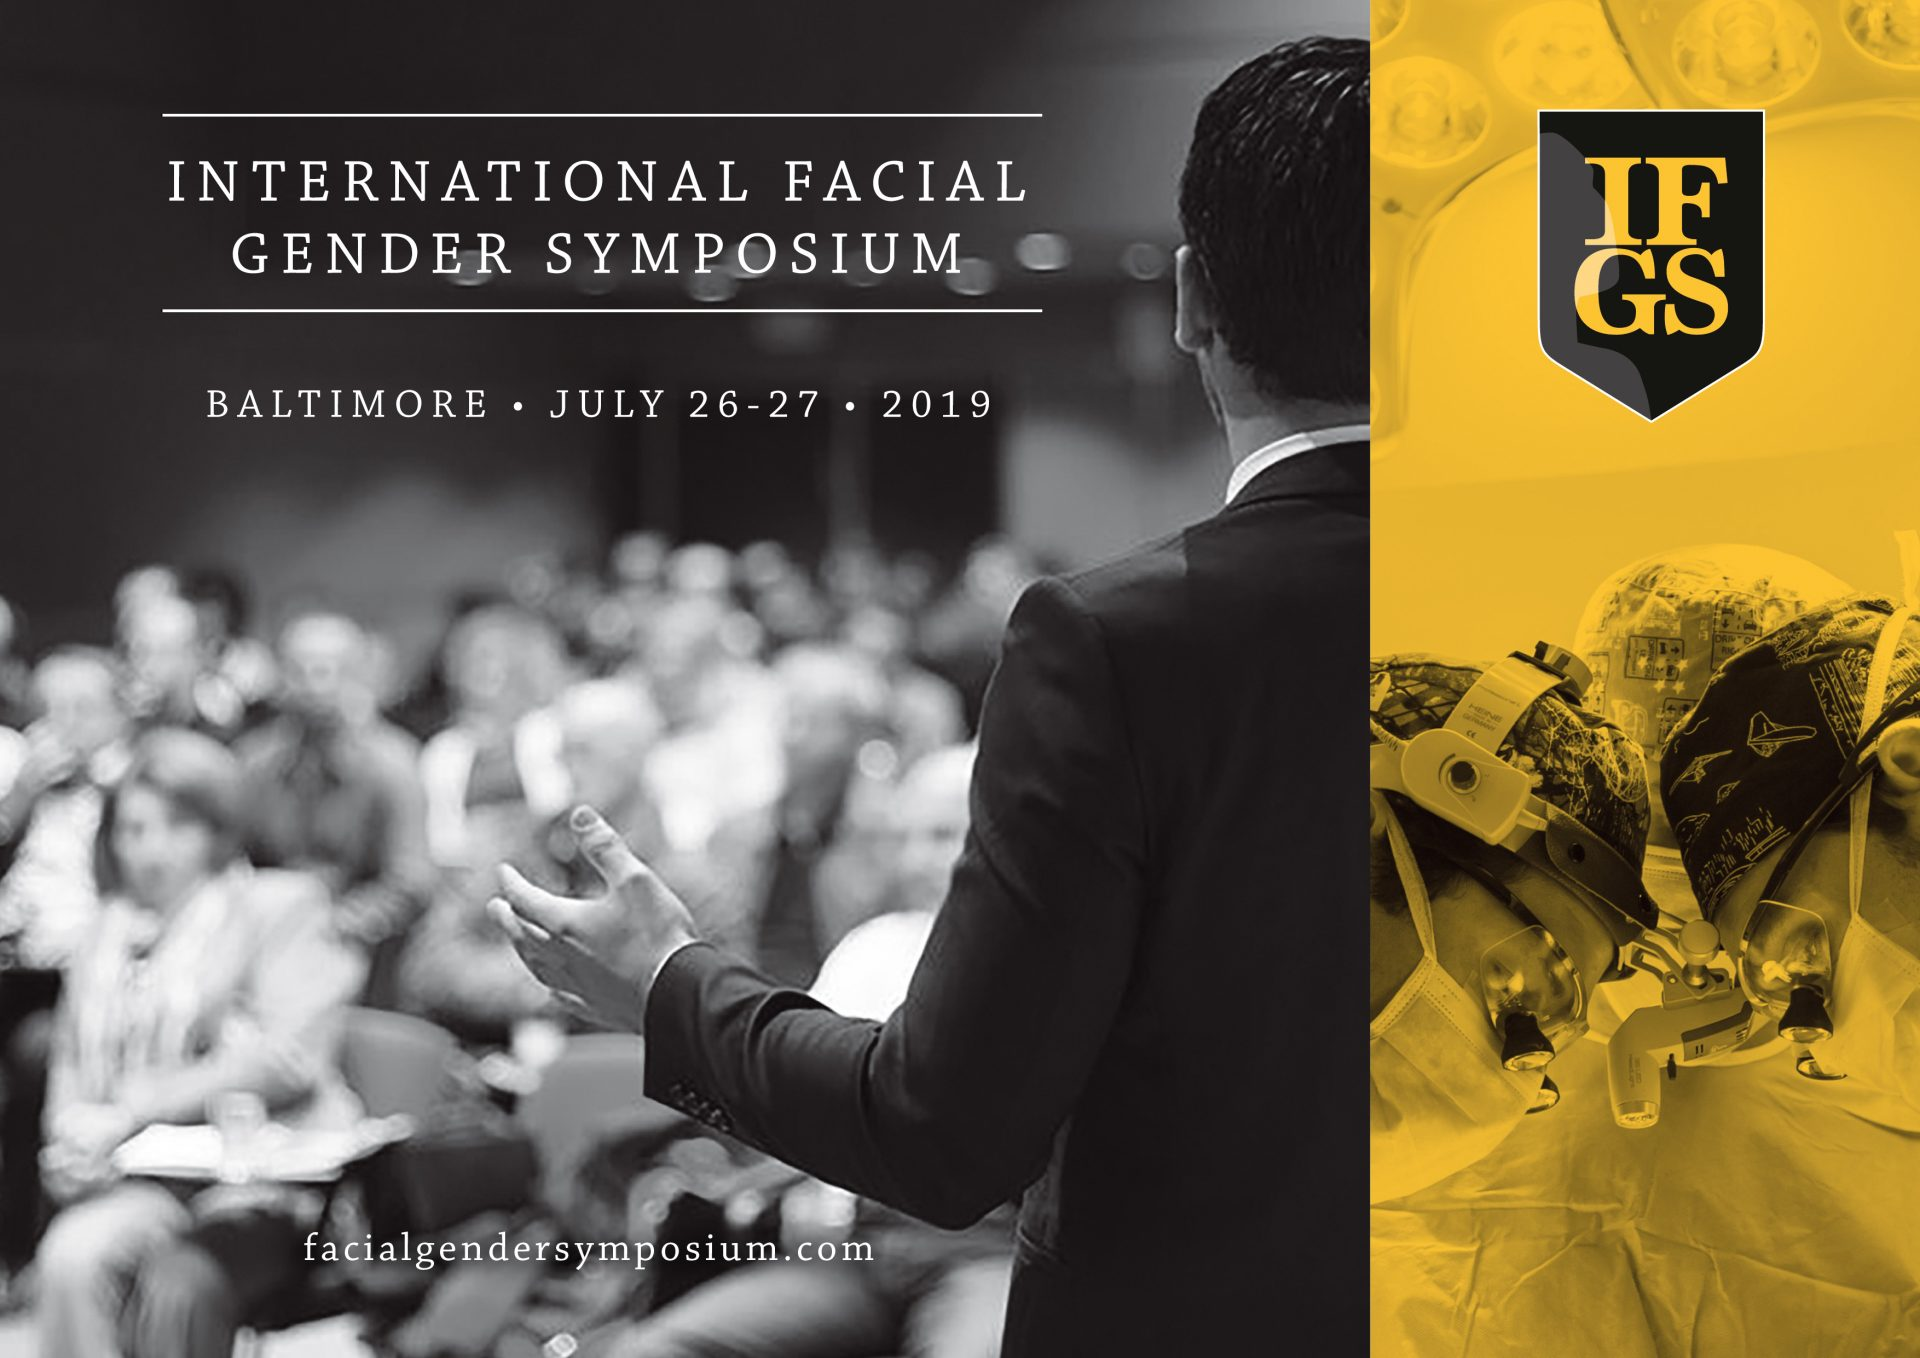 FFS Surgery Training for better gender-affirming treatment | FACIALTEAM